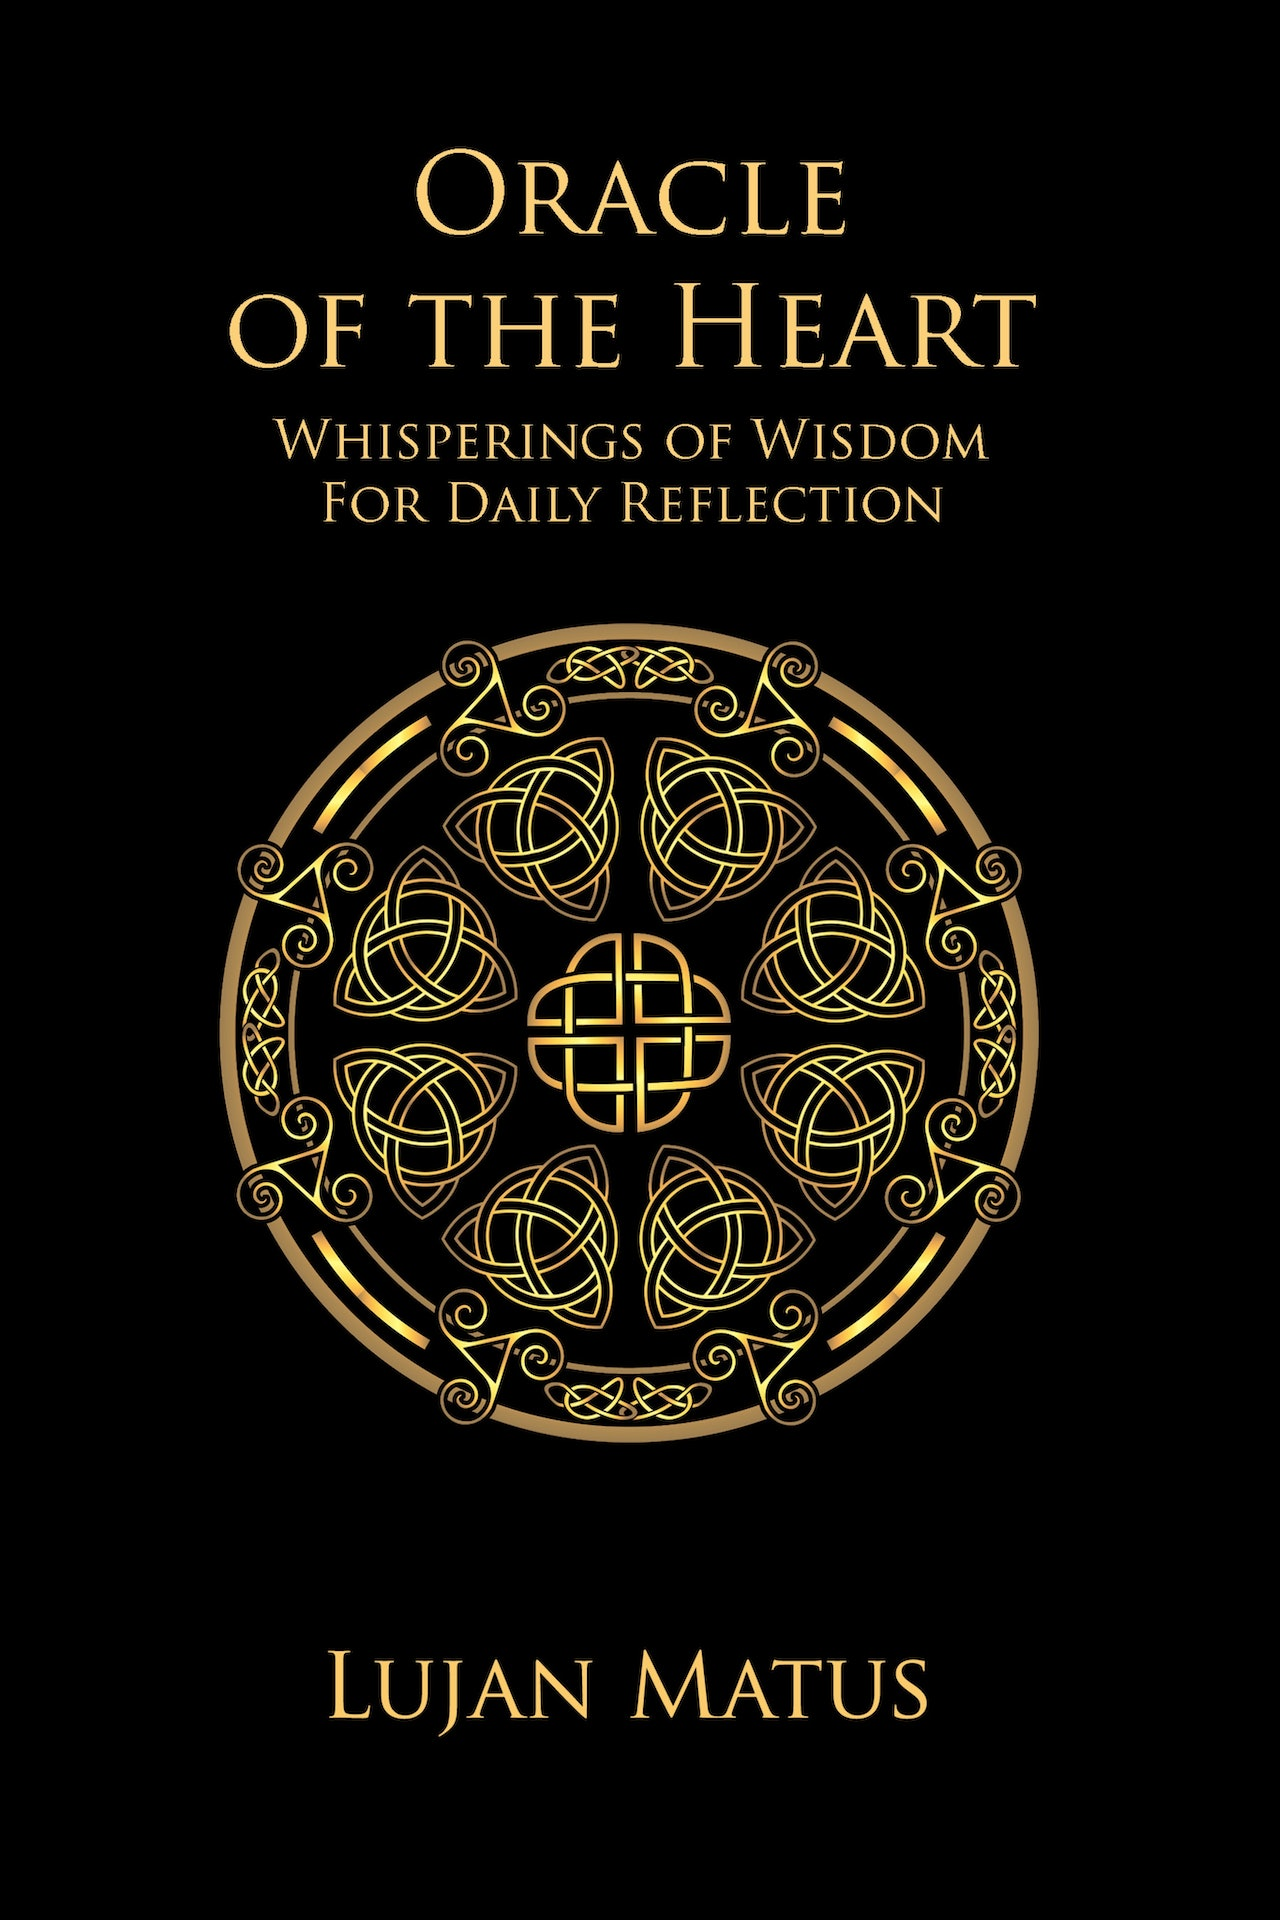 Oracle of the Heart: Whisperings of Wisdom for Daily Reflection